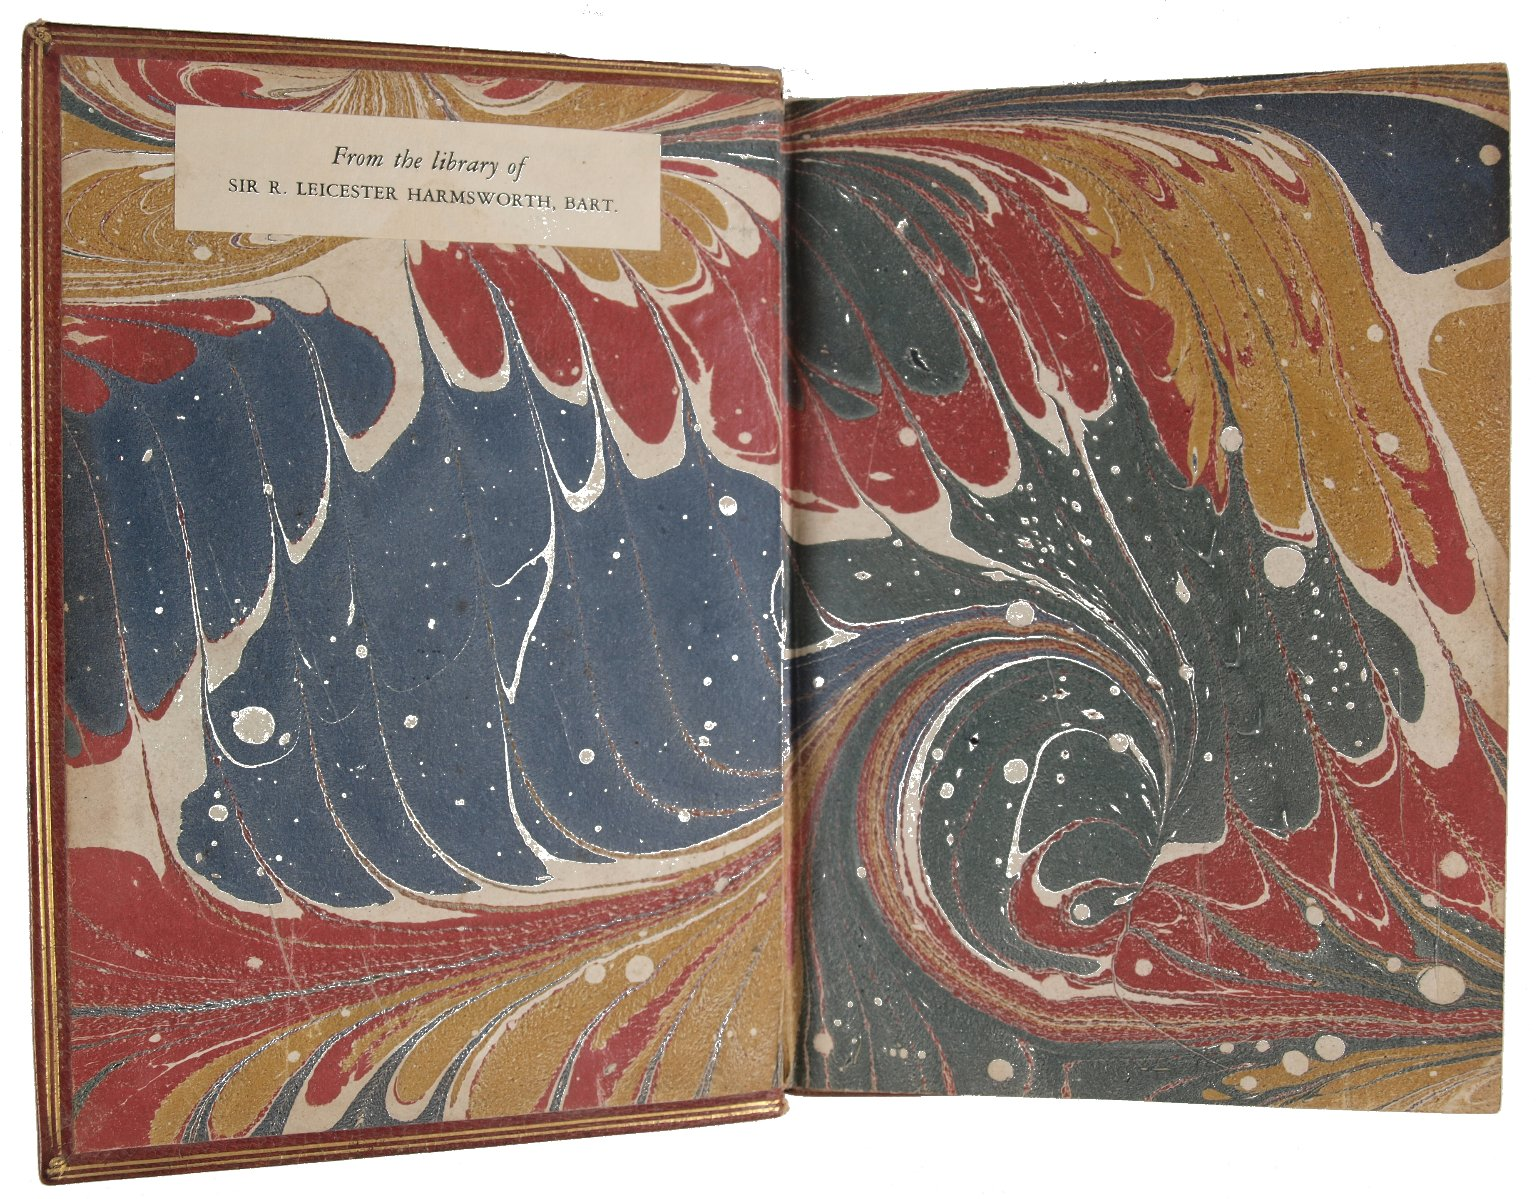 Inside front cover marble paper, STC 13084.